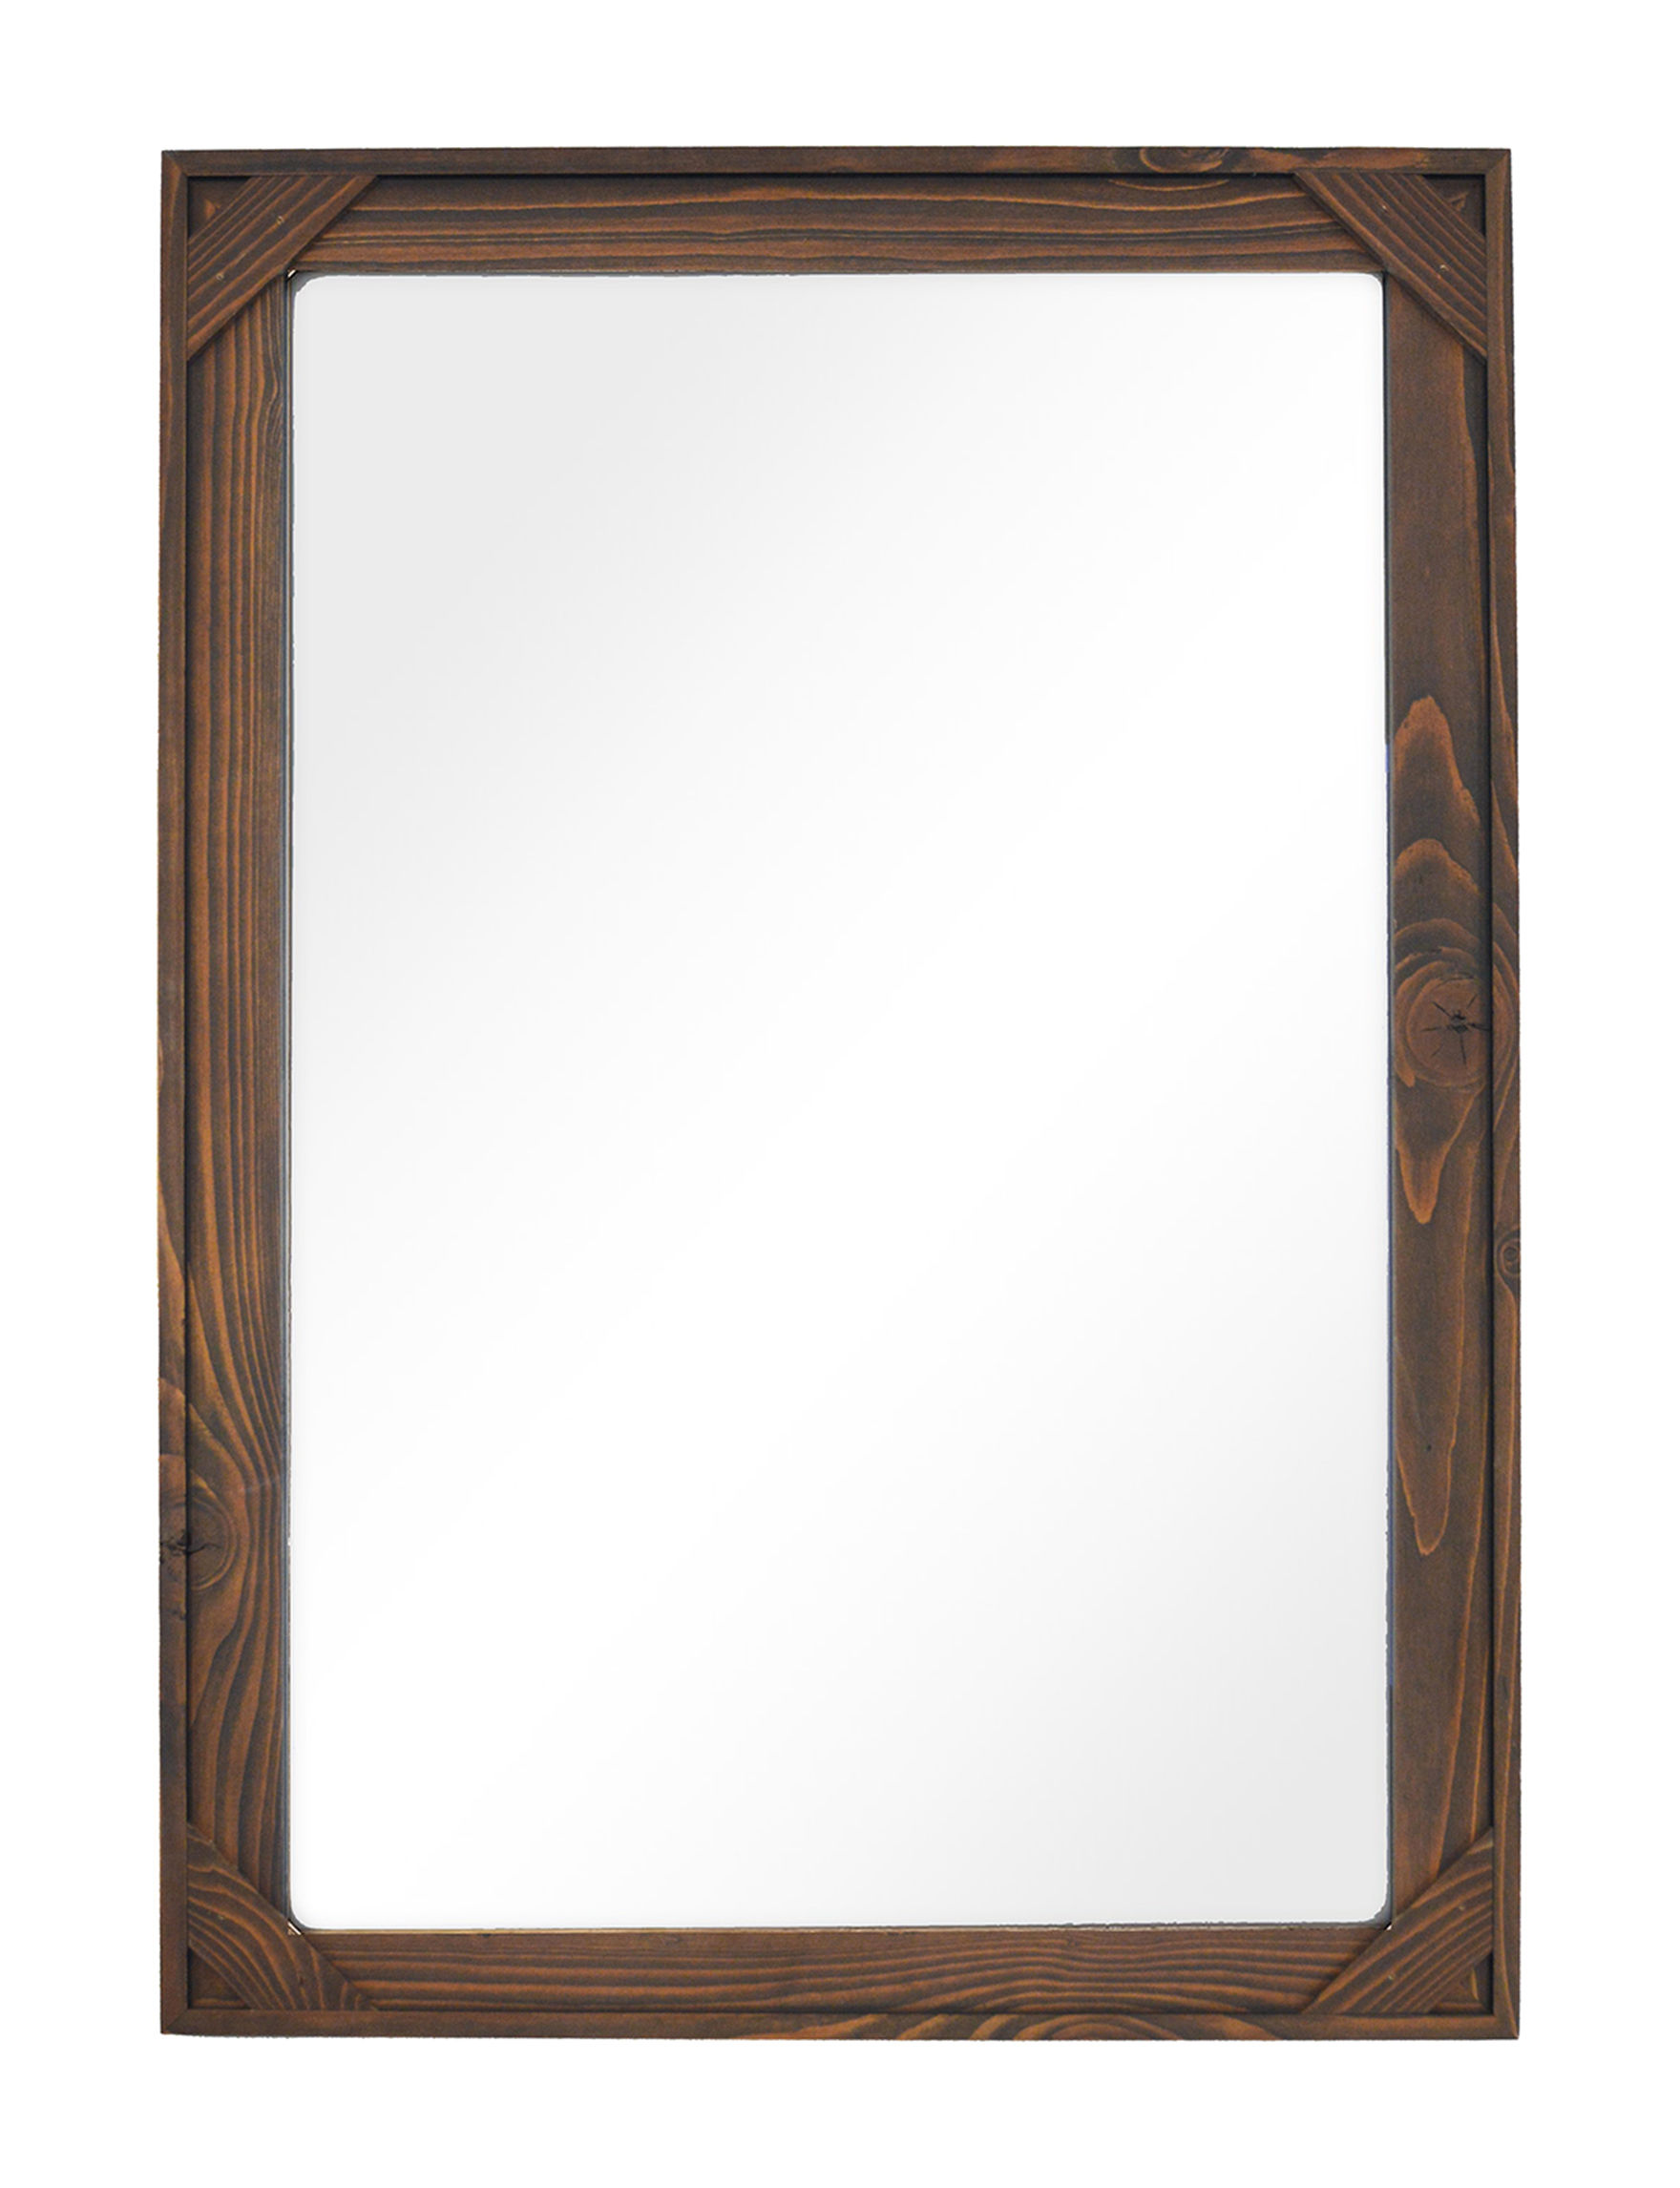 New View Brown Mirrors Wall Decor